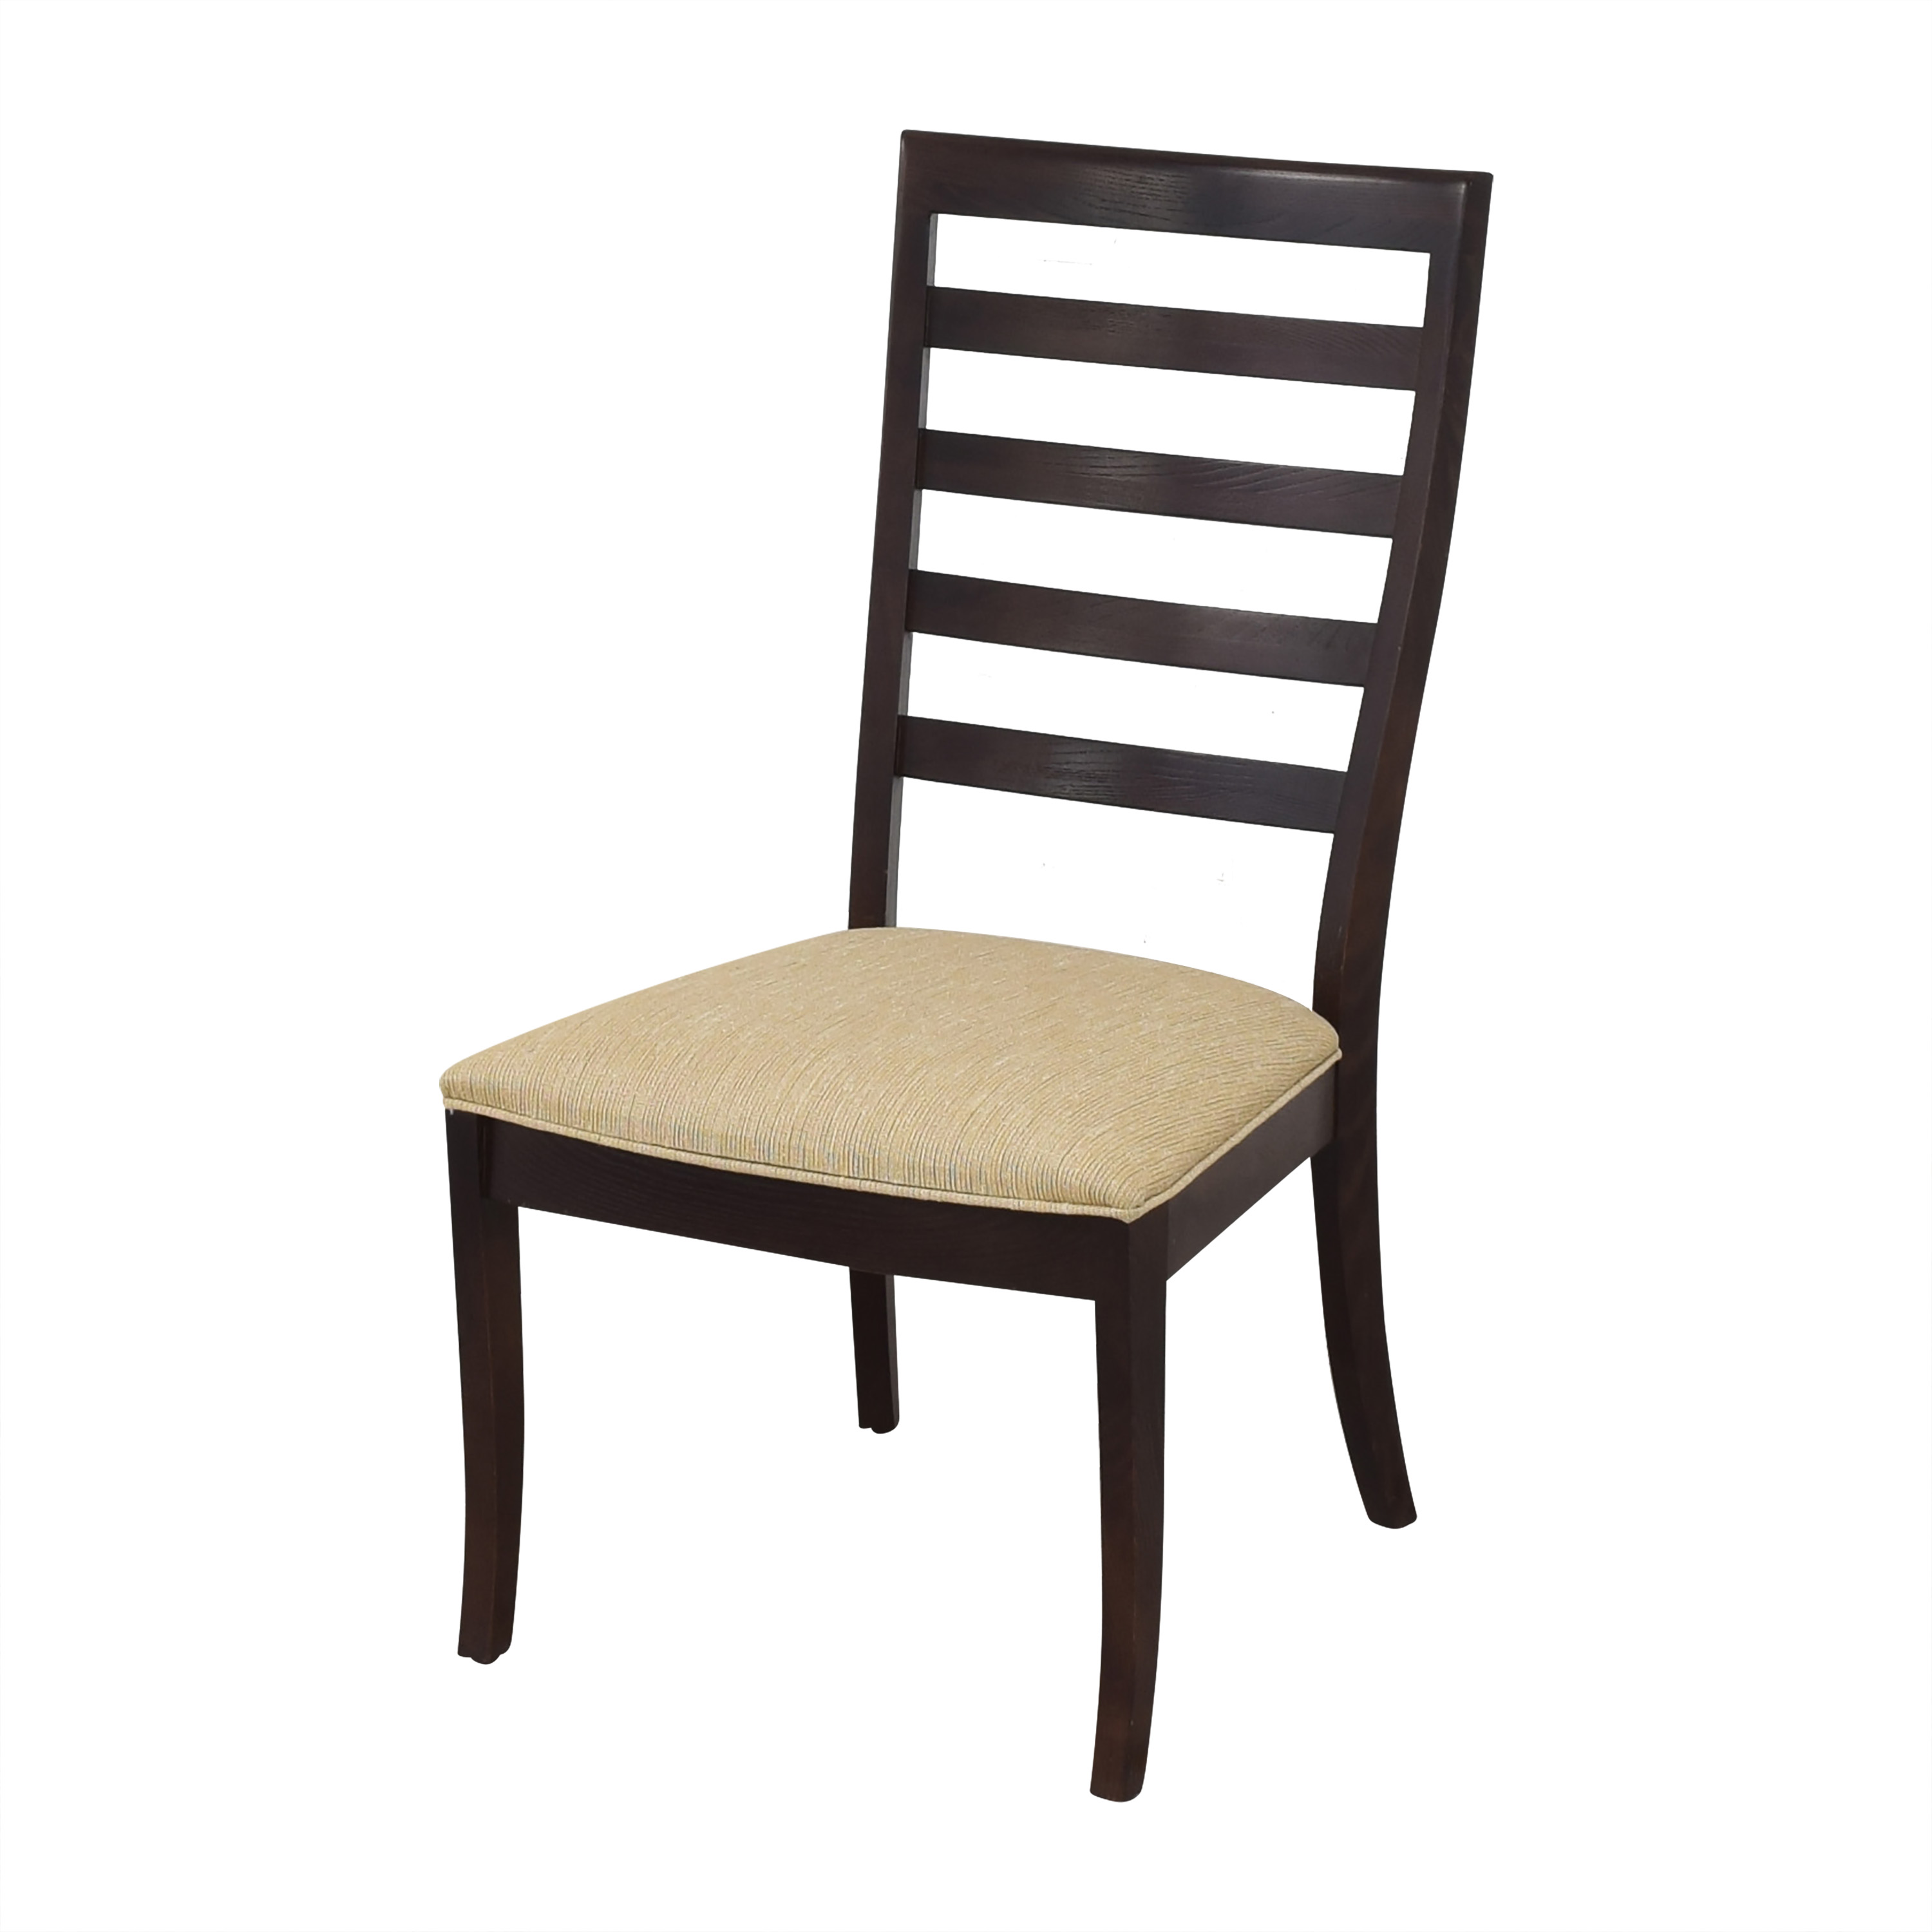 Stanley Slat Dining Chairs sale